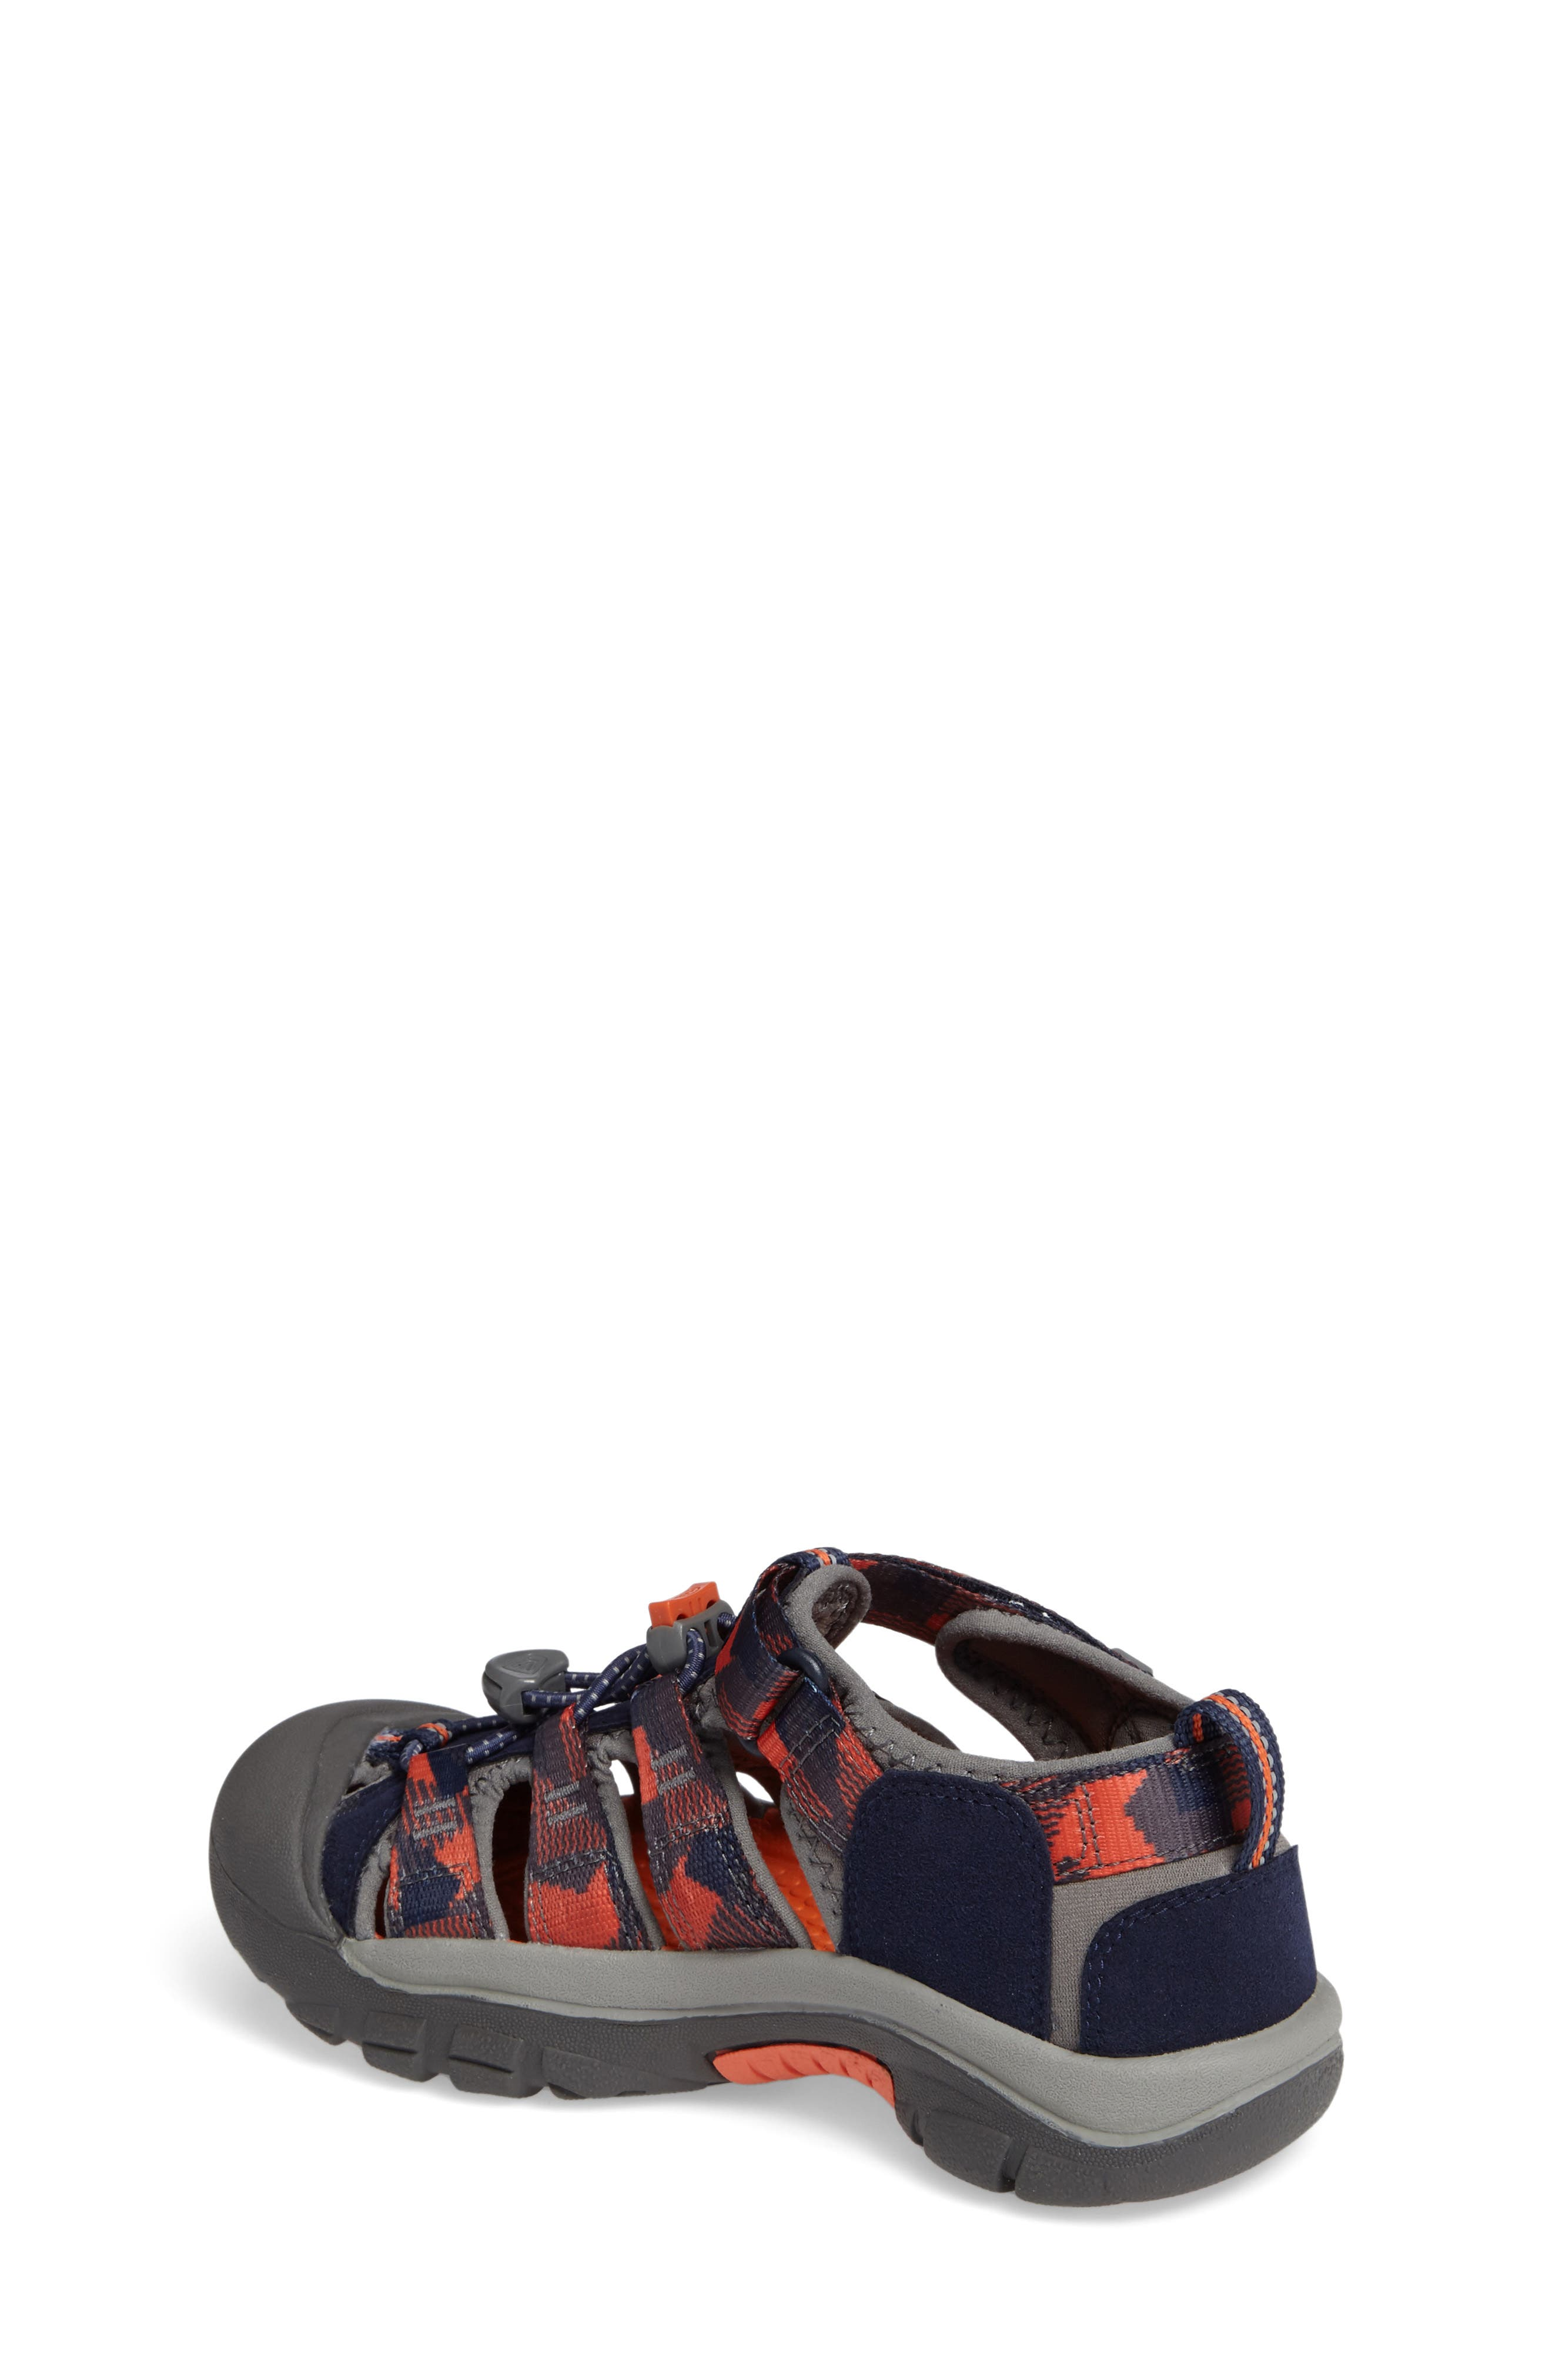 ,                             'Newport H2' Water Friendly Sandal,                             Alternate thumbnail 314, color,                             402